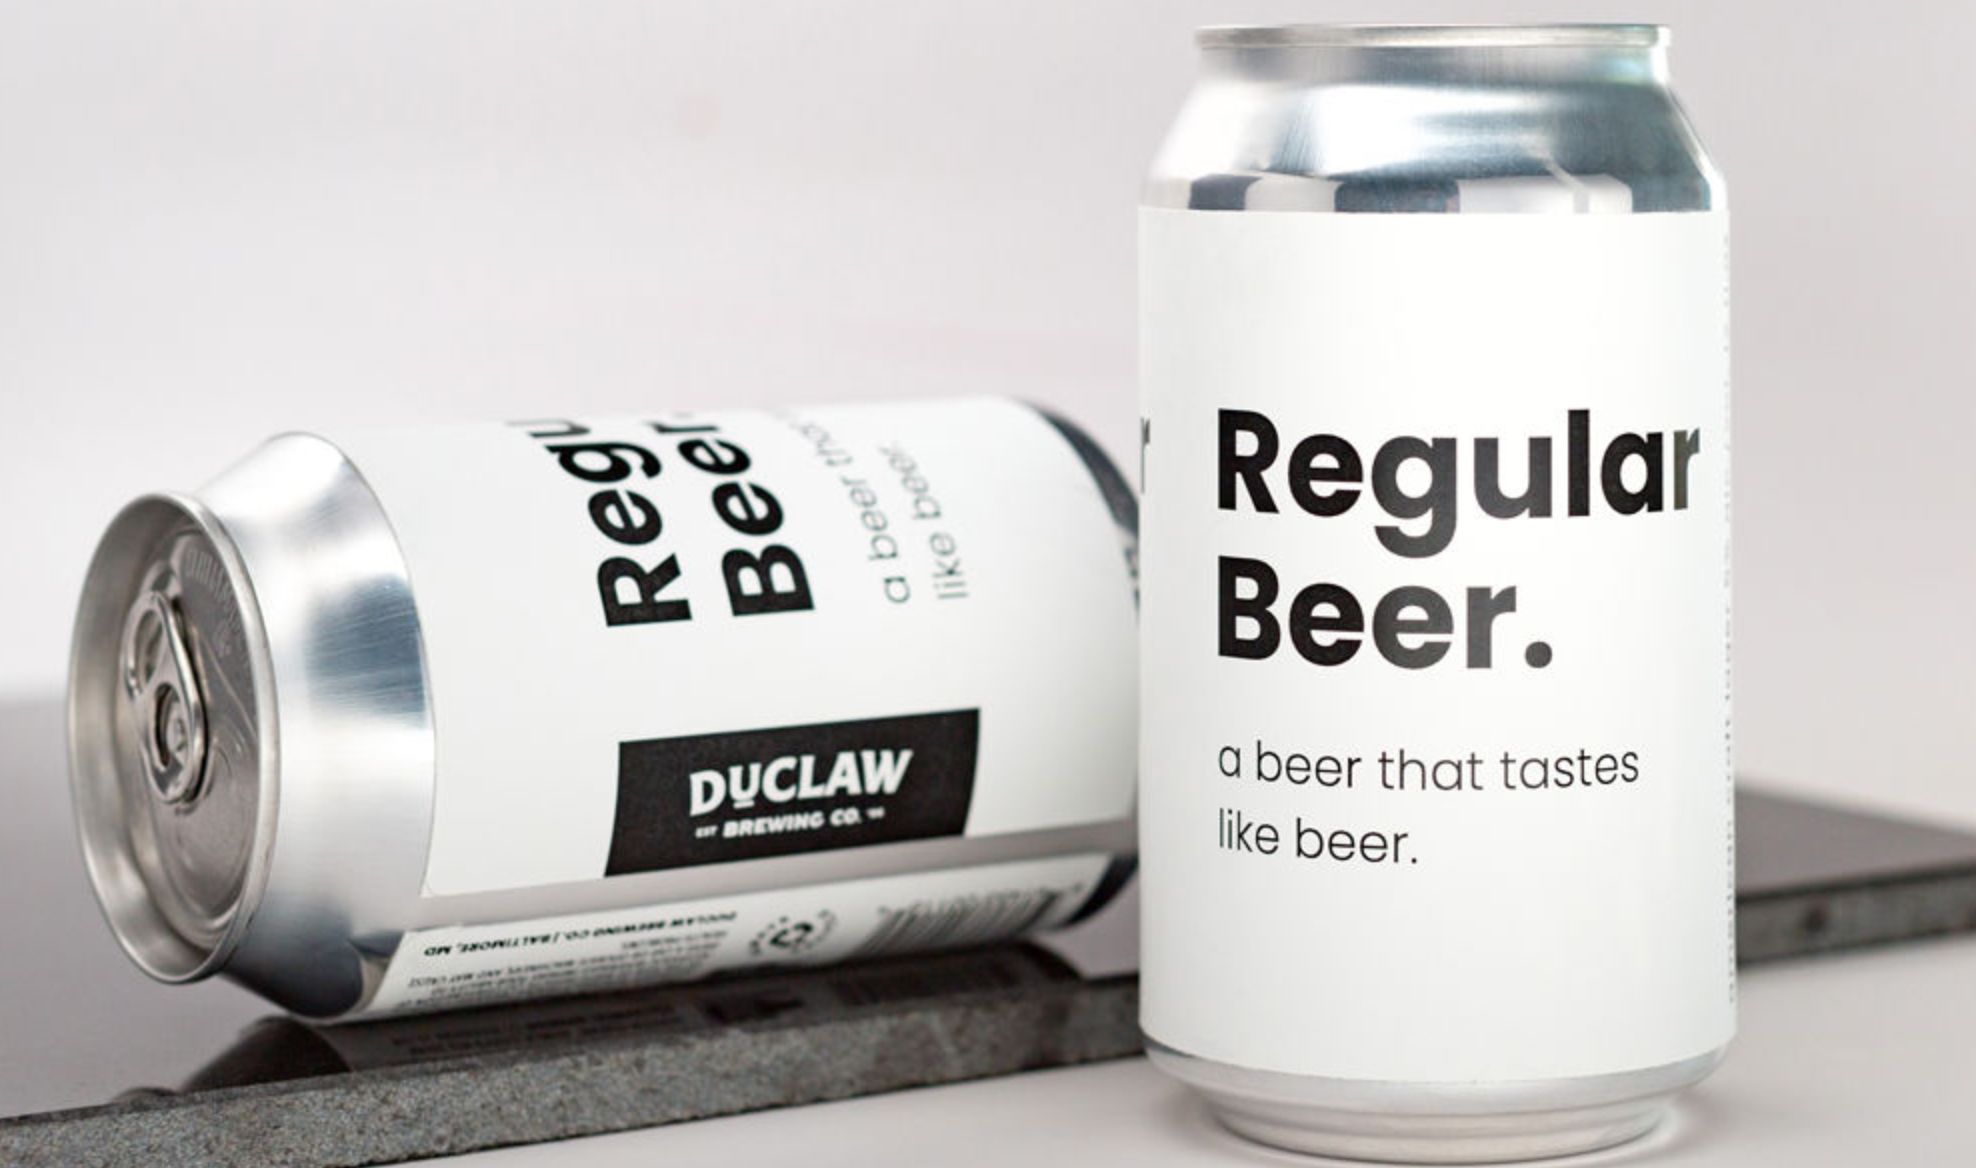 DuClaw regular beer